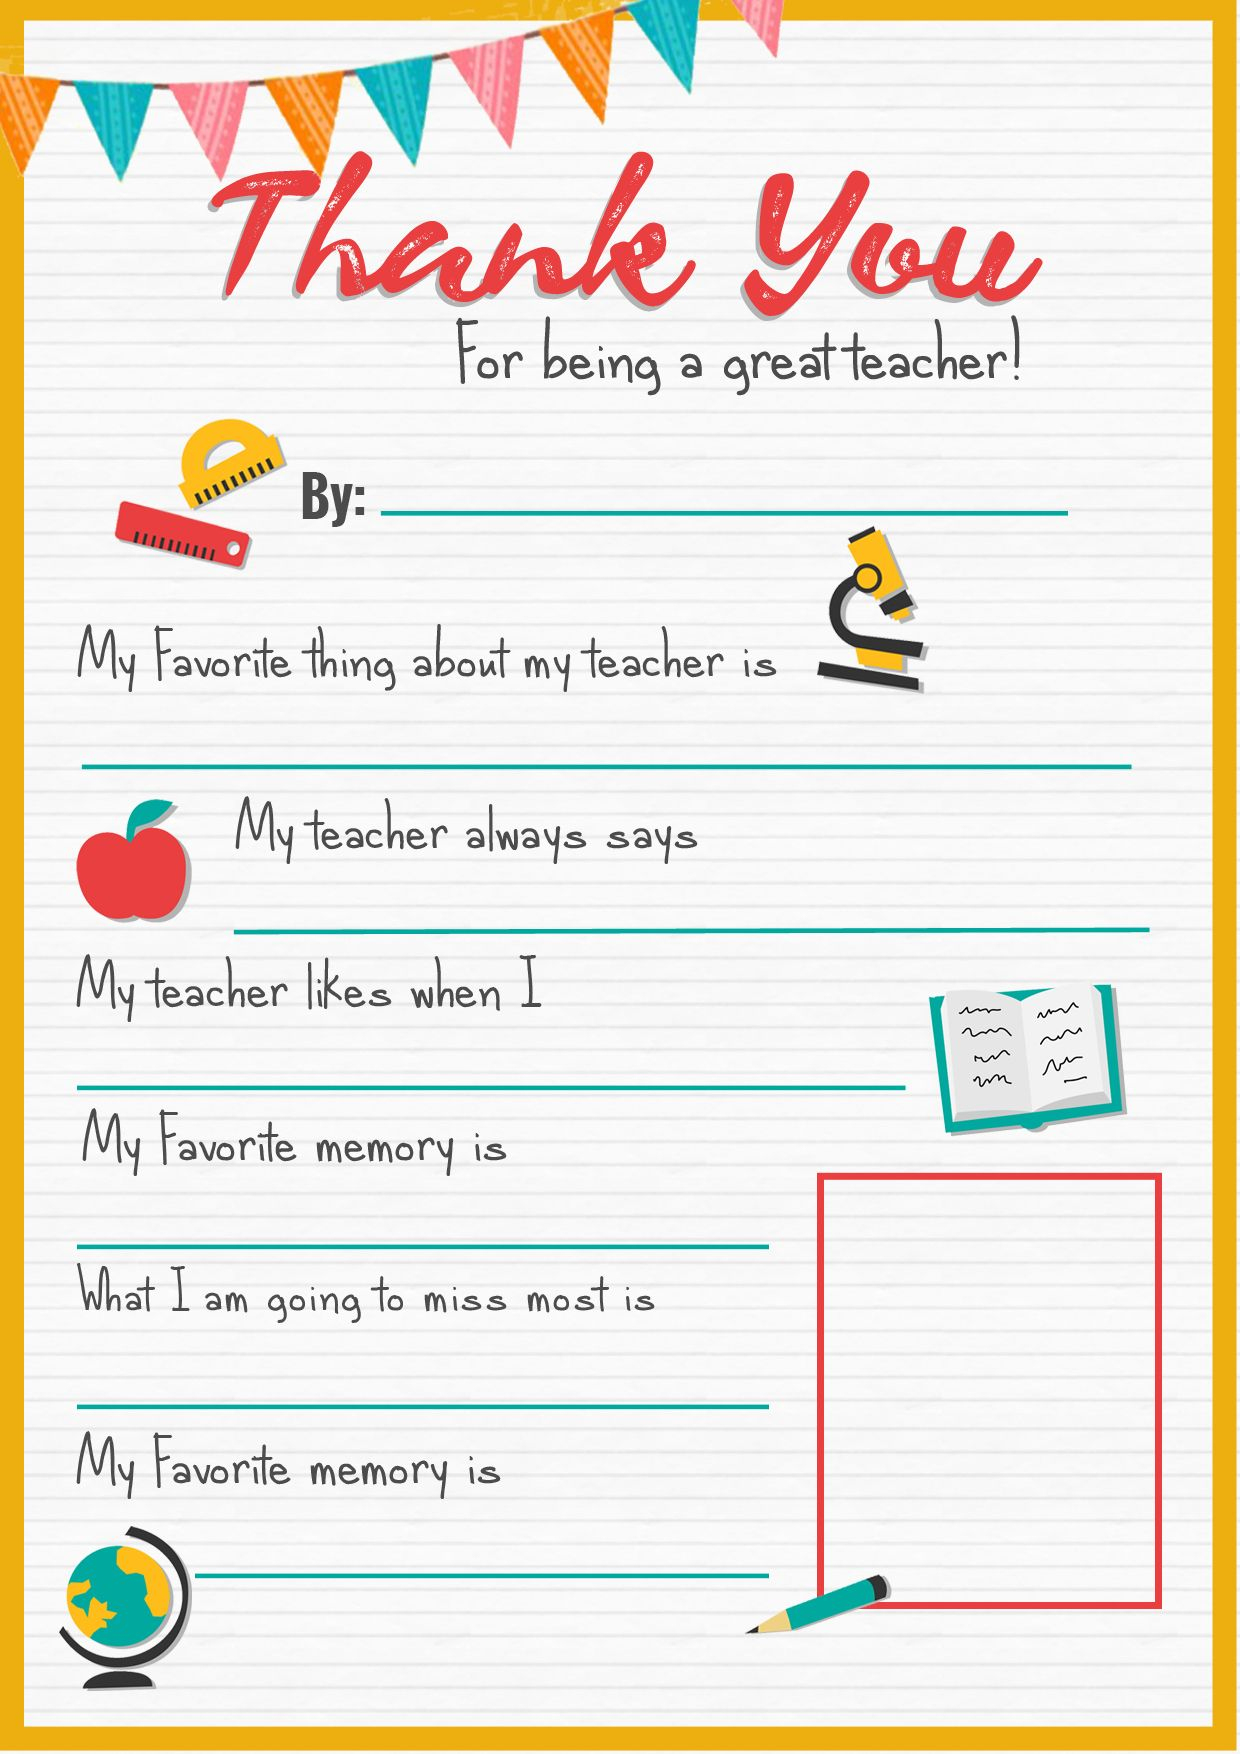 Thank You Teacher - A Free Printable   Stay At Home Mum   Teacher - All About My Teacher Free Printable